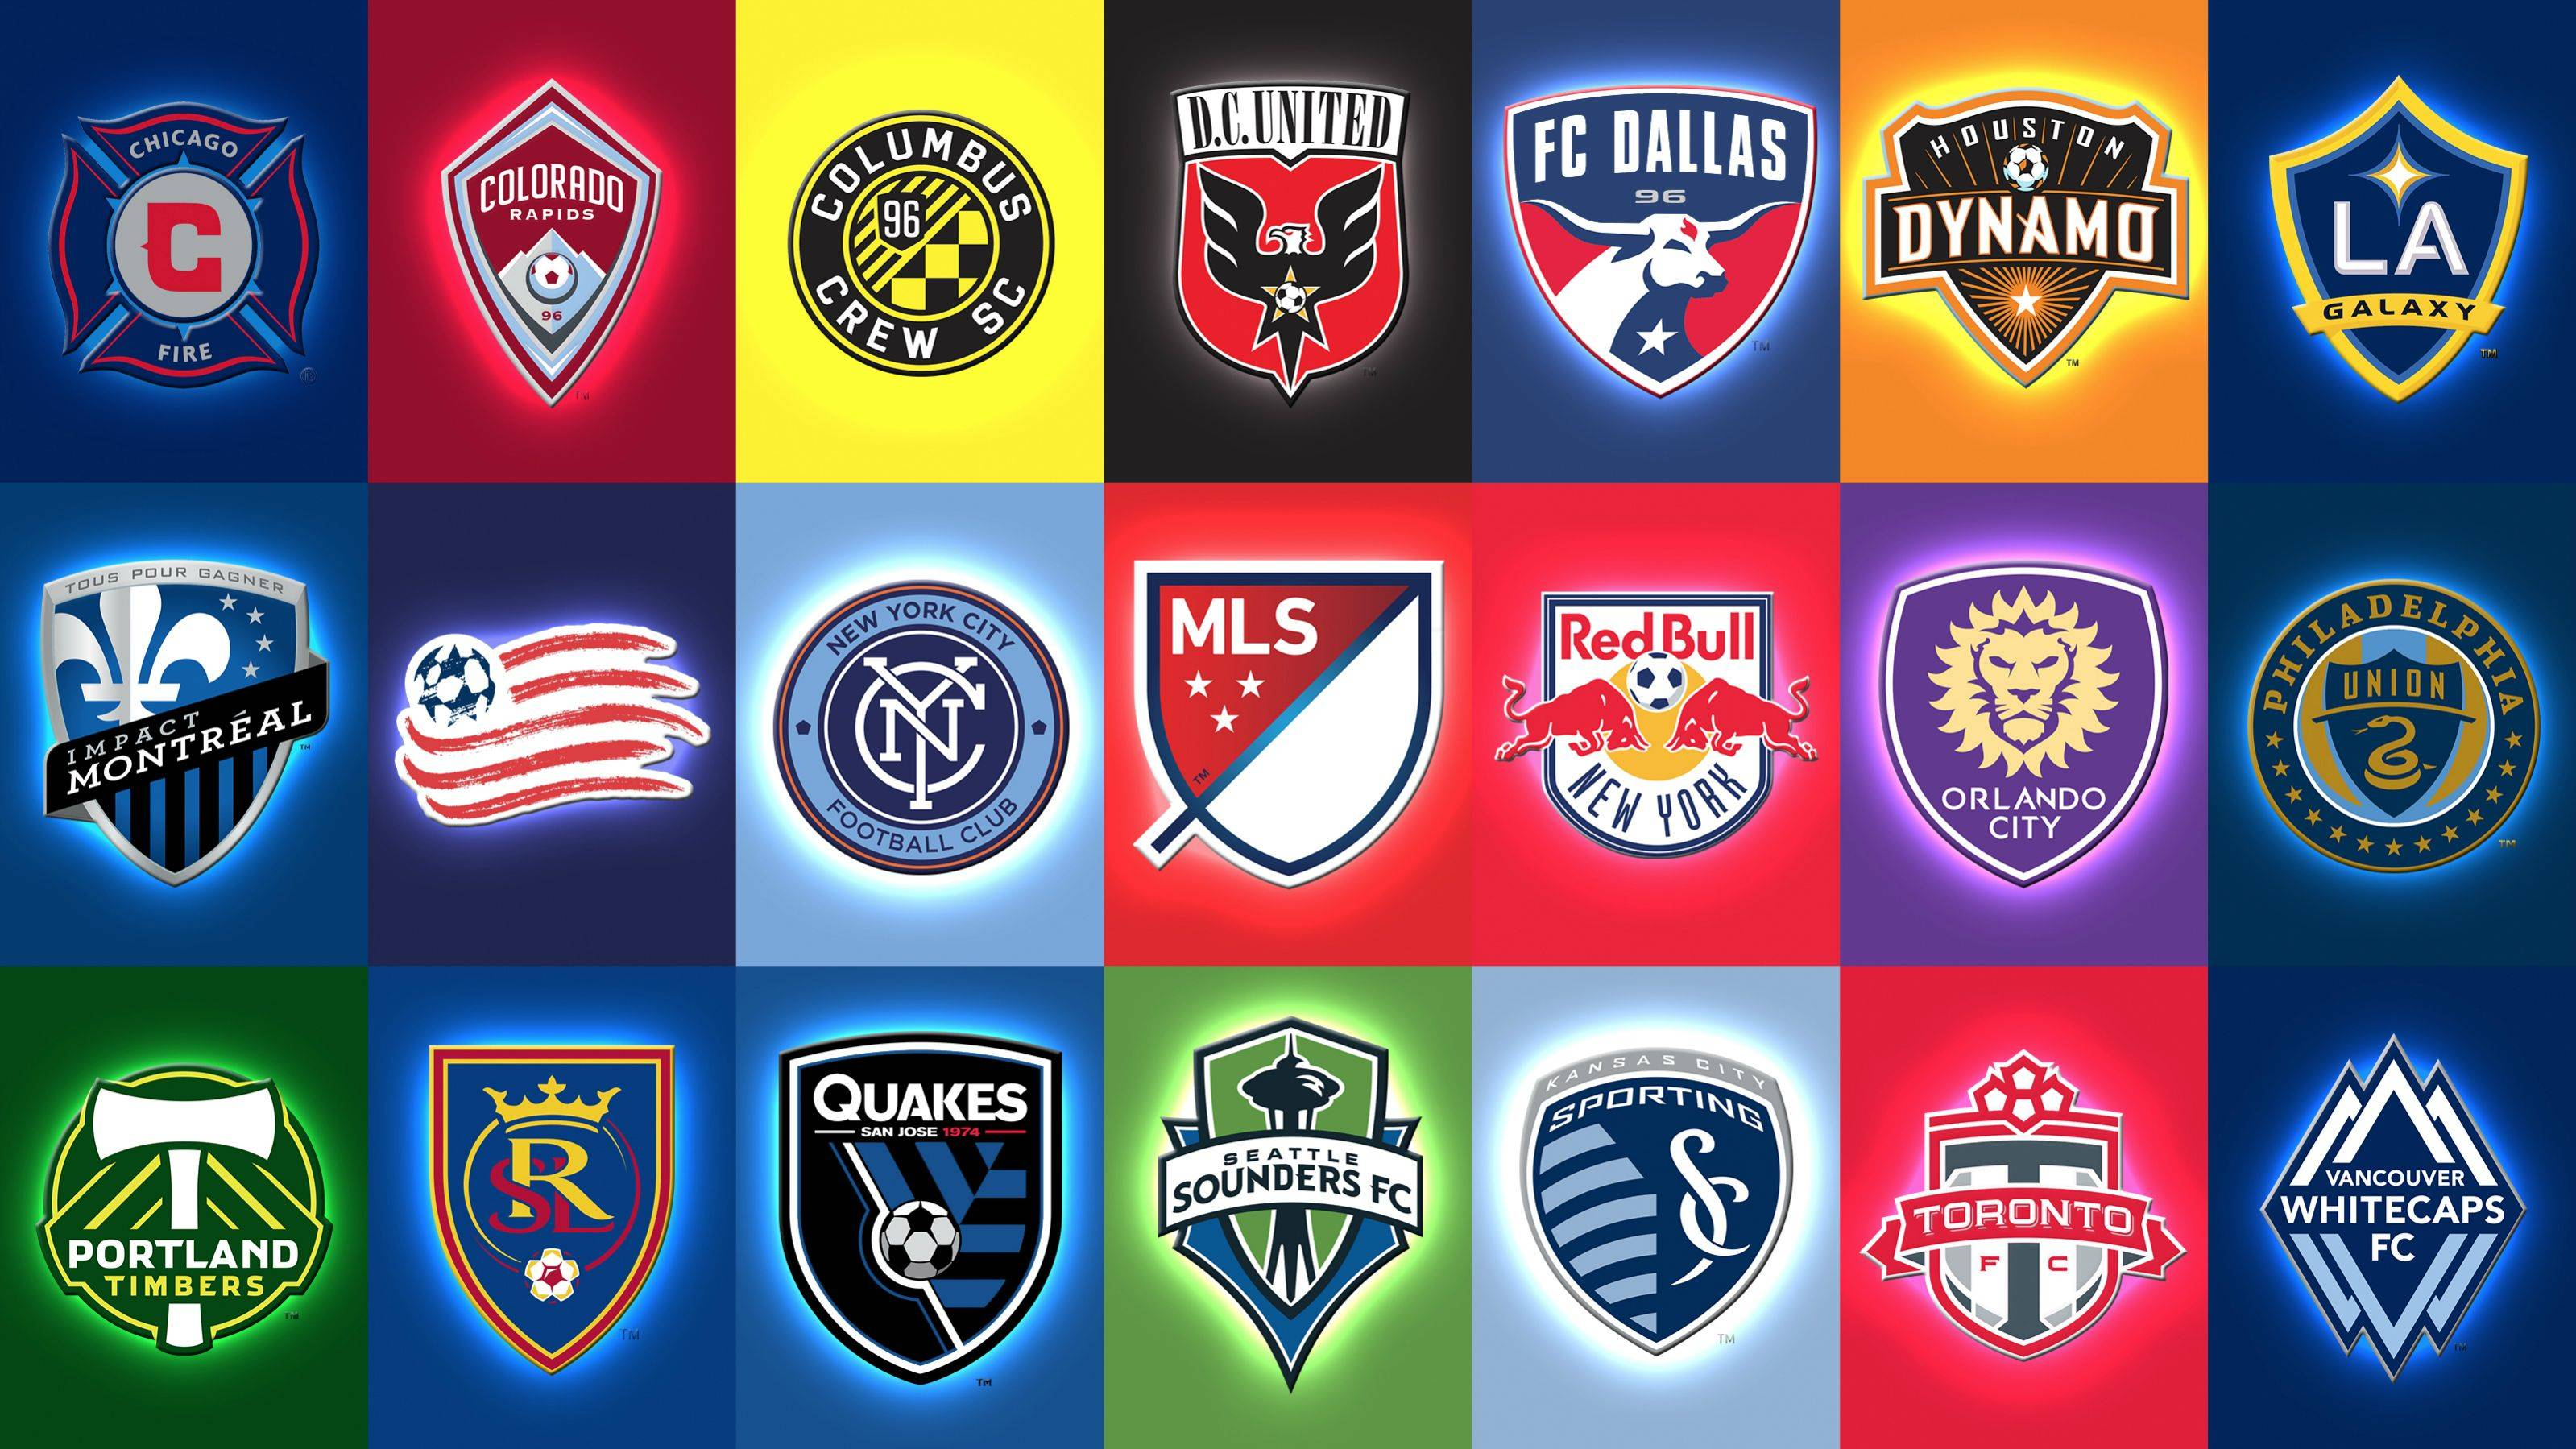 I made an MLS wallpapers because I'm snowed in. You can use it if you